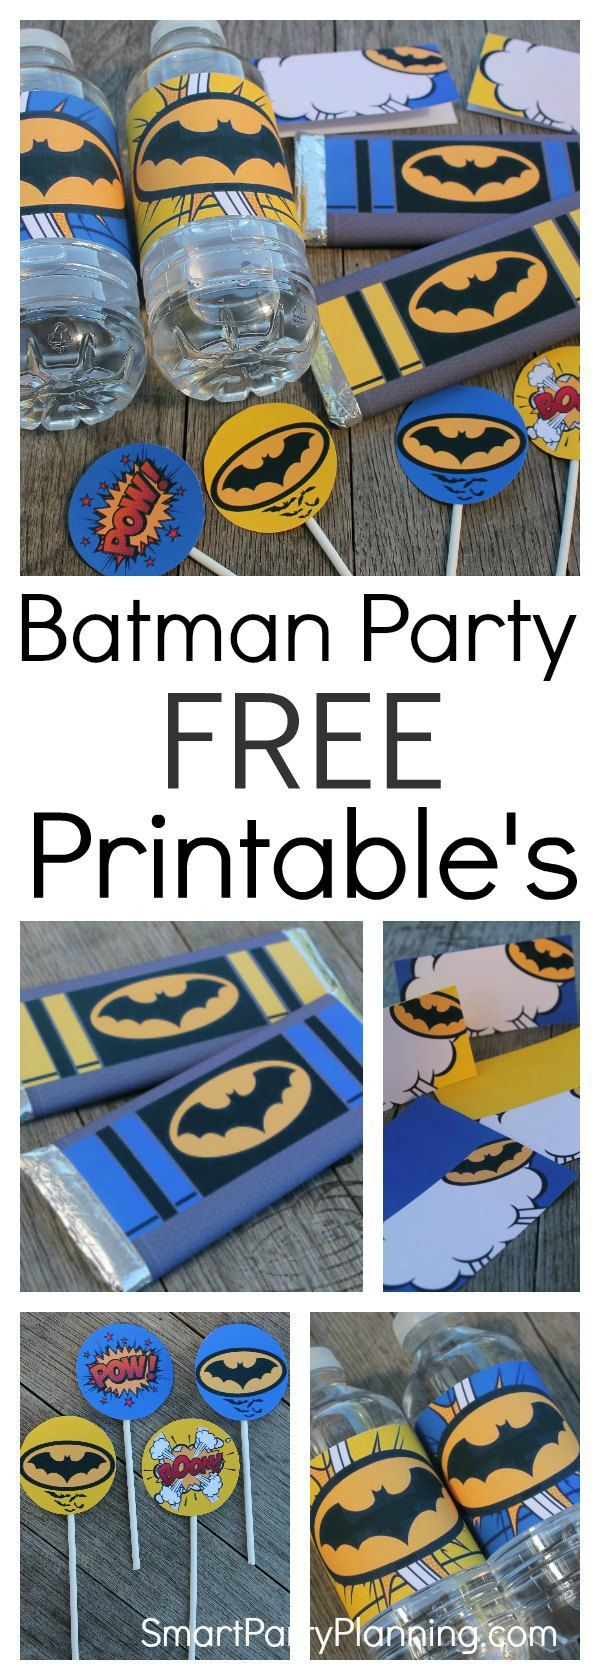 These free Batman printable's are perfect for a Batman or superhero party. The set includes tent labels, cupcake toppers, water or soda bottle labels and Hershey bar wrappers which can be used as party favors. Just by using the set, you are well on your w